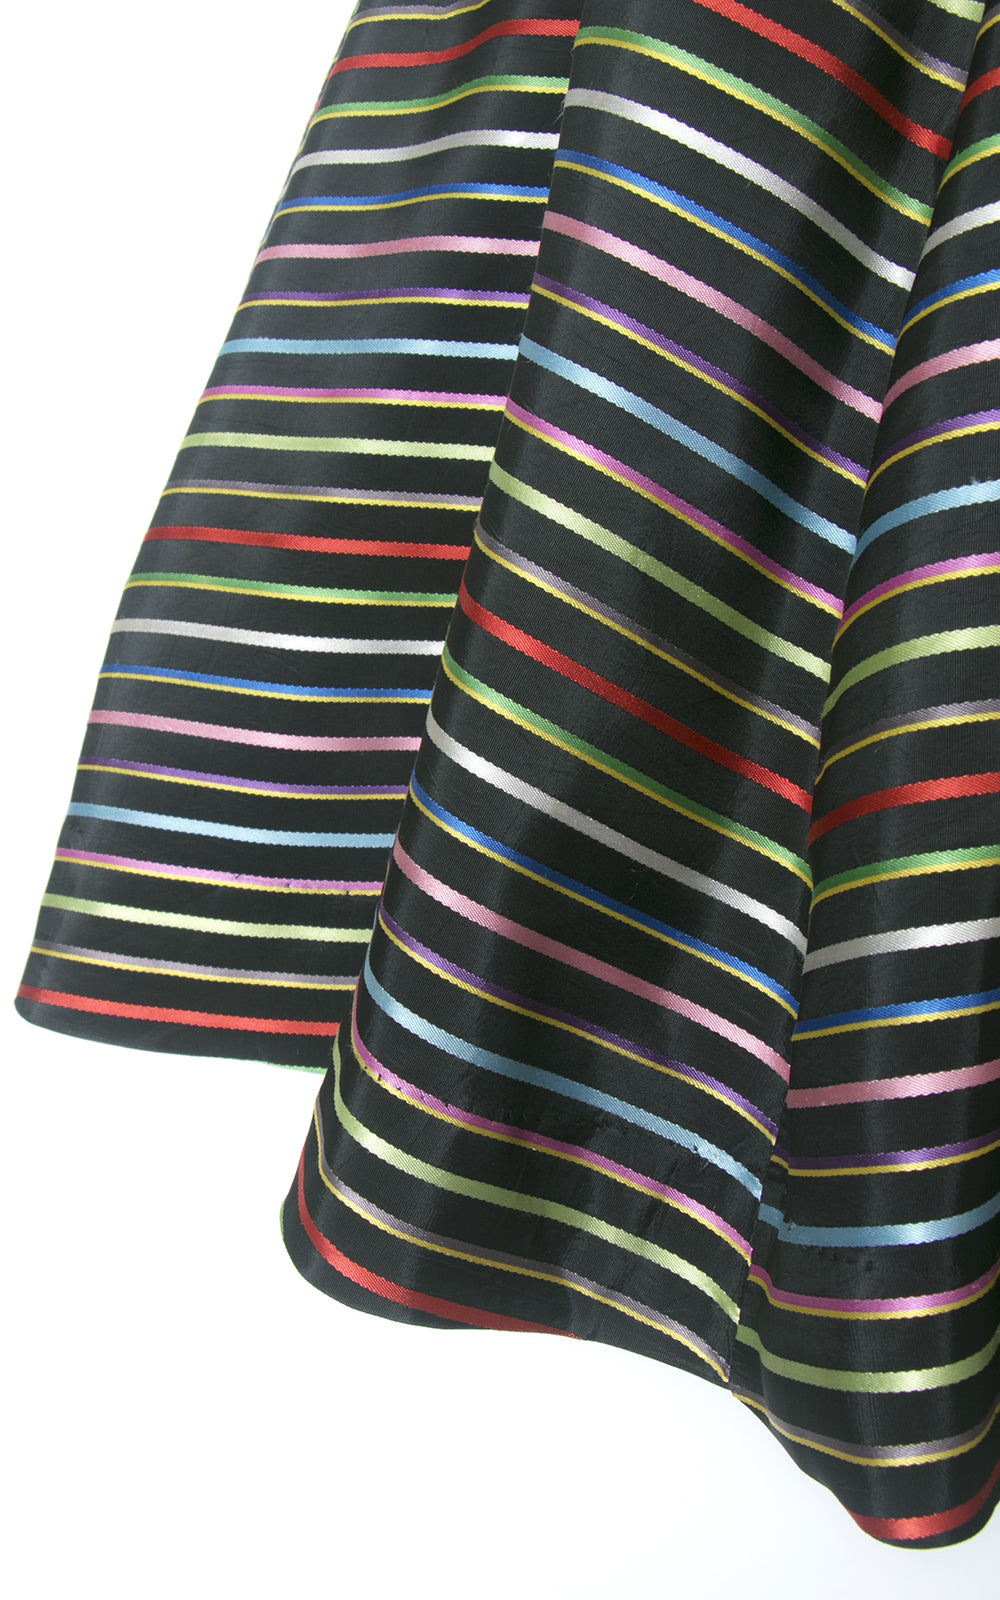 1950s Rainbow Striped Black Taffeta Skirt | medium